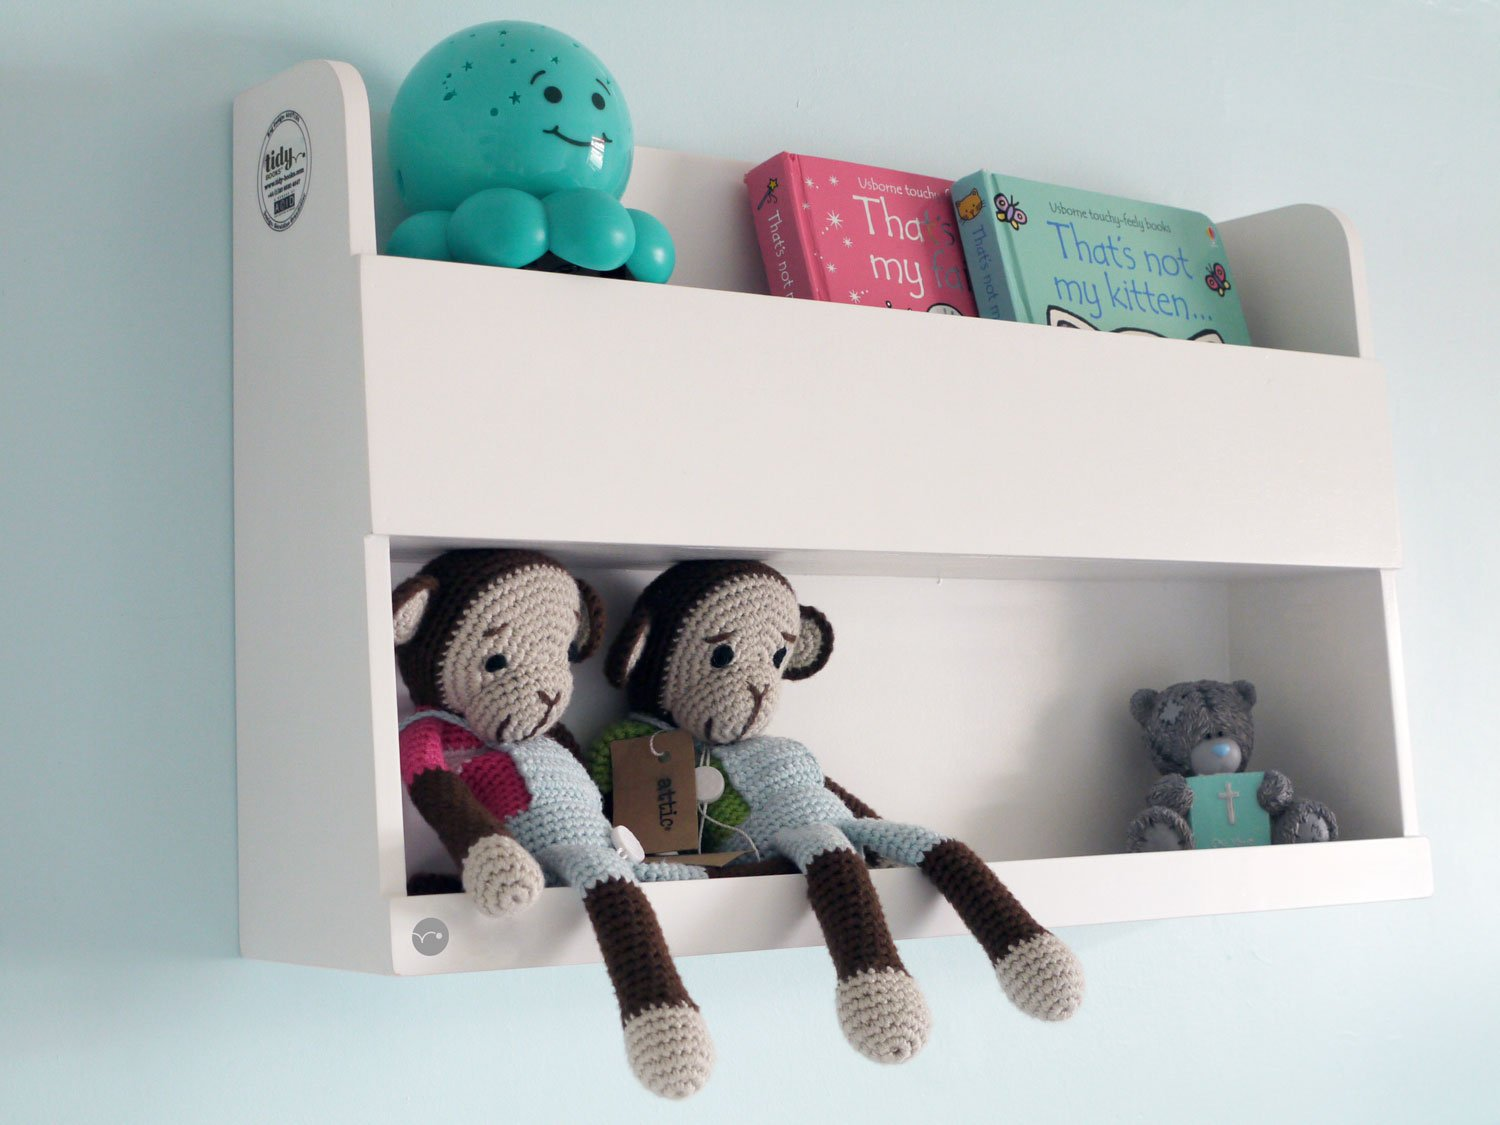 Tidy Books - The Original Bunk Bed Shelves and Bedside Storage for Top Bunk Beds and Cabin Beds -Wood-White-33 x 53 x 12cm